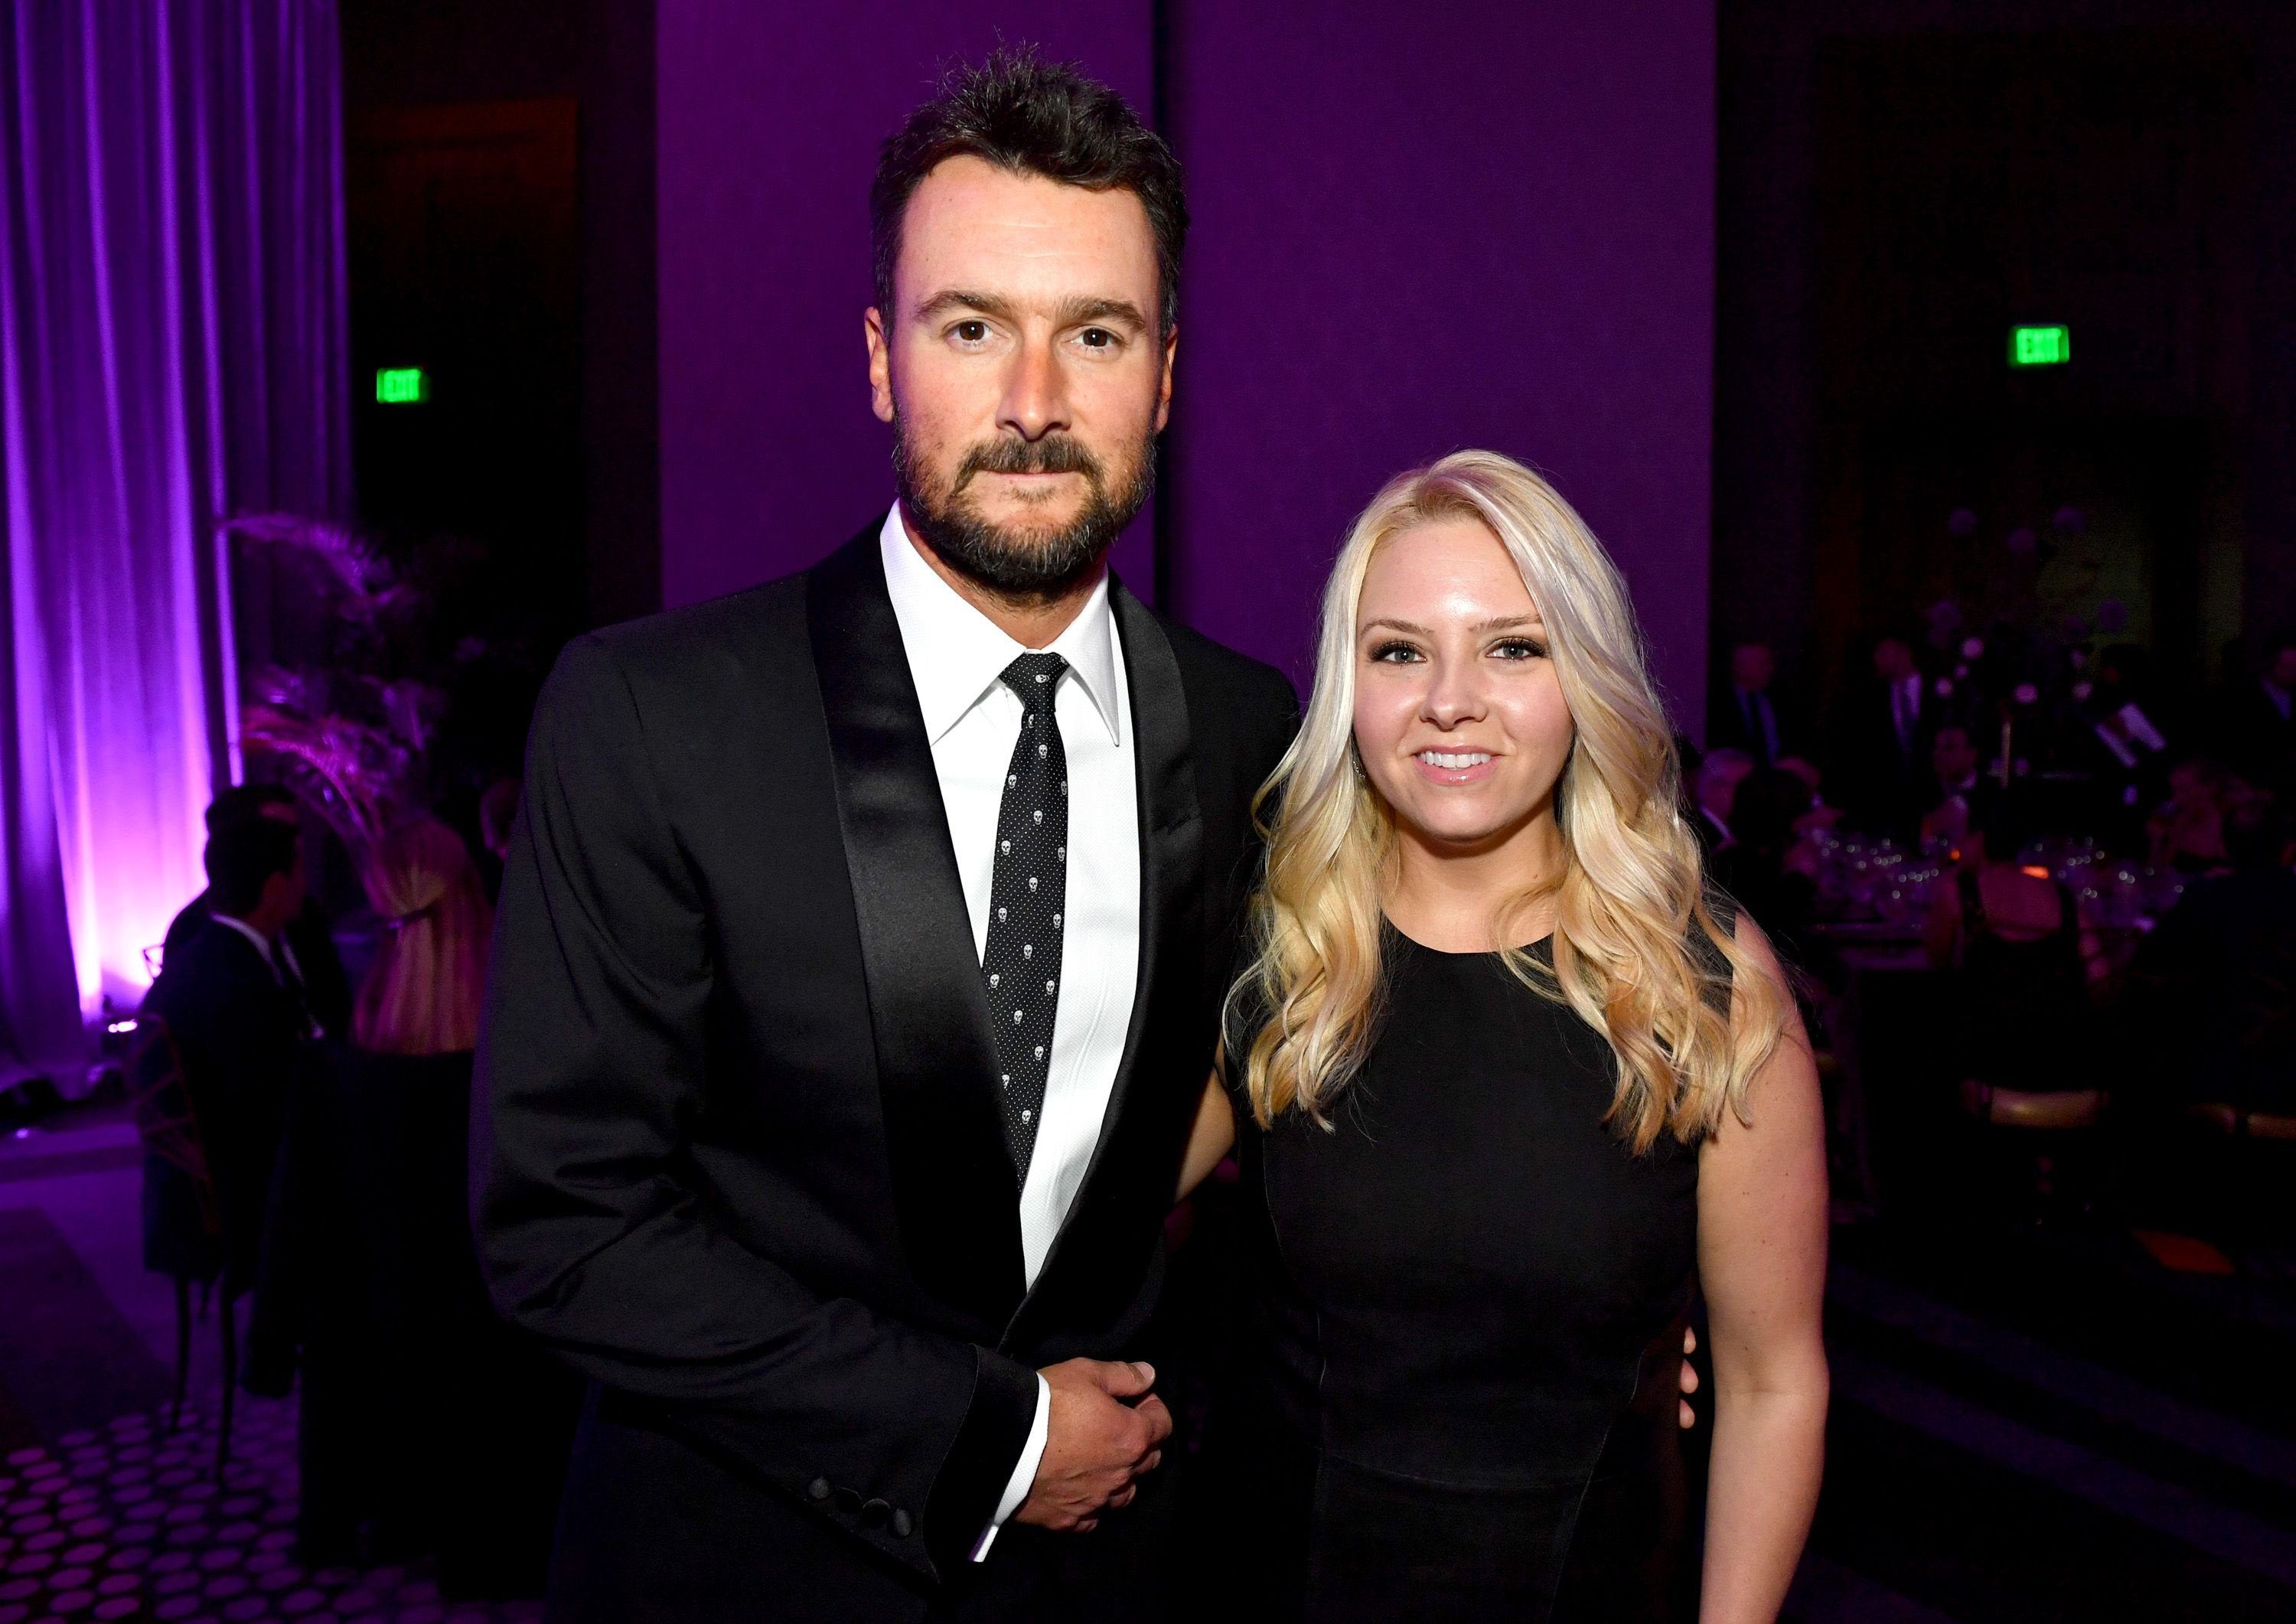 Eric Church and Katherine Blasingame Church at Best Cellars Wine Dinner on April 24, 2017, in Nashville, Tennessee | Photo: Jason Davis/Getty Images